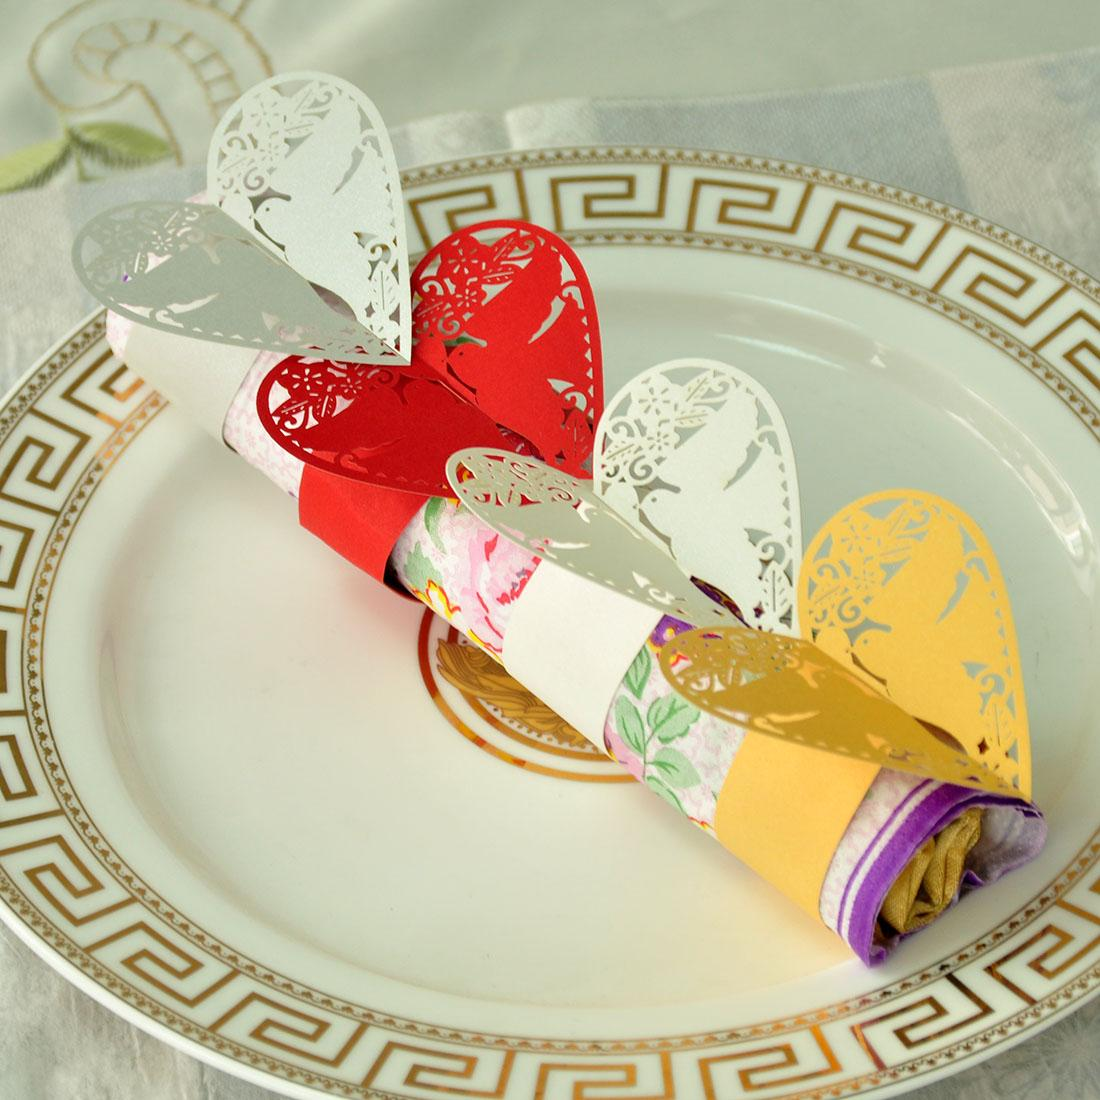 Pearl Paper Home Decor Stock Product India Napkin Rings: Laser Cut Hollow Pigeon Shaped Paper Napkin Rings Wraps